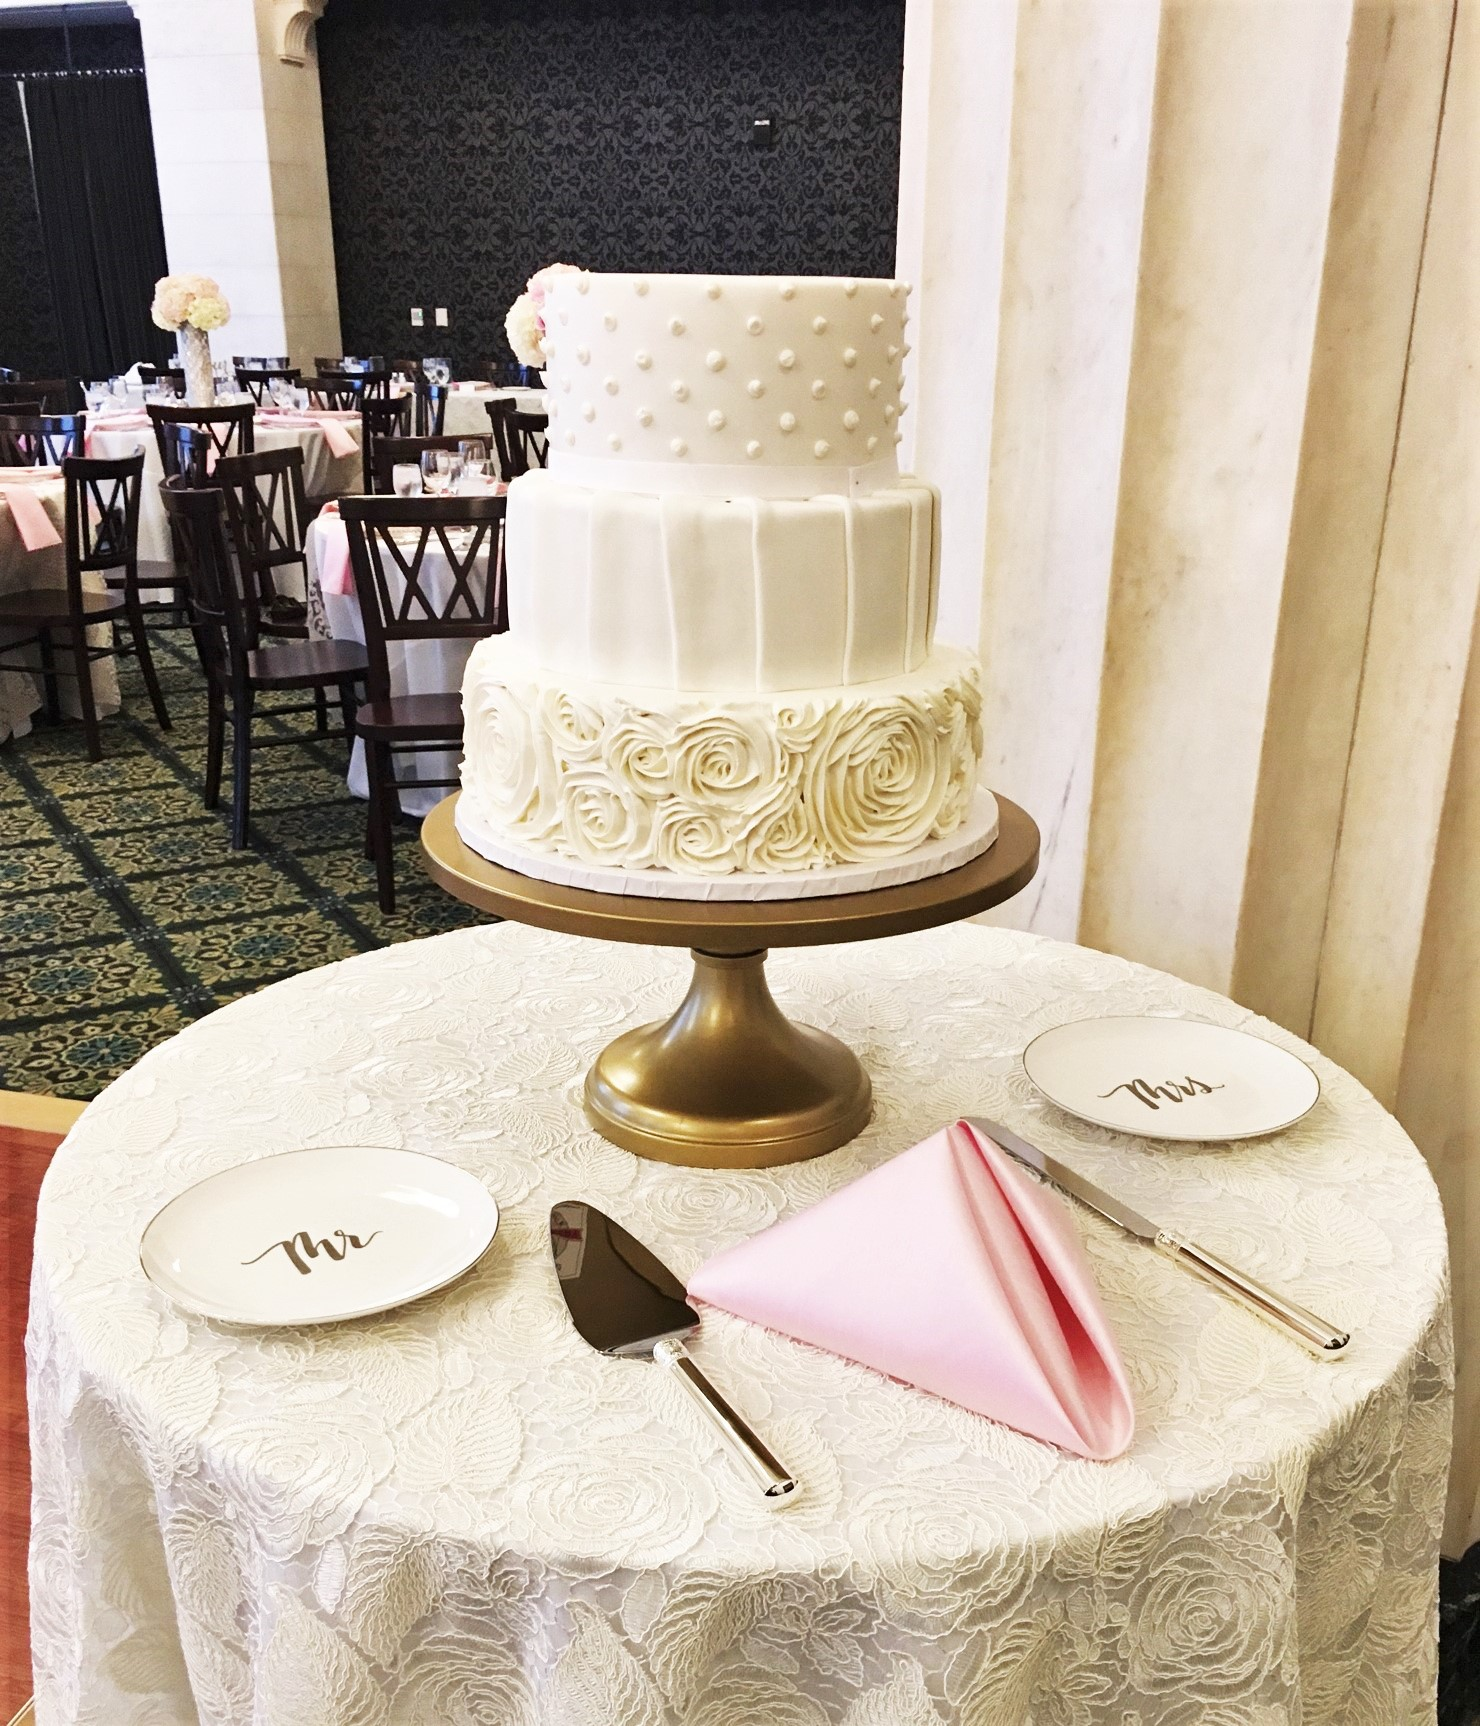 Picture Your Wedding Cake At The Poughkeepsie Grand Hotel